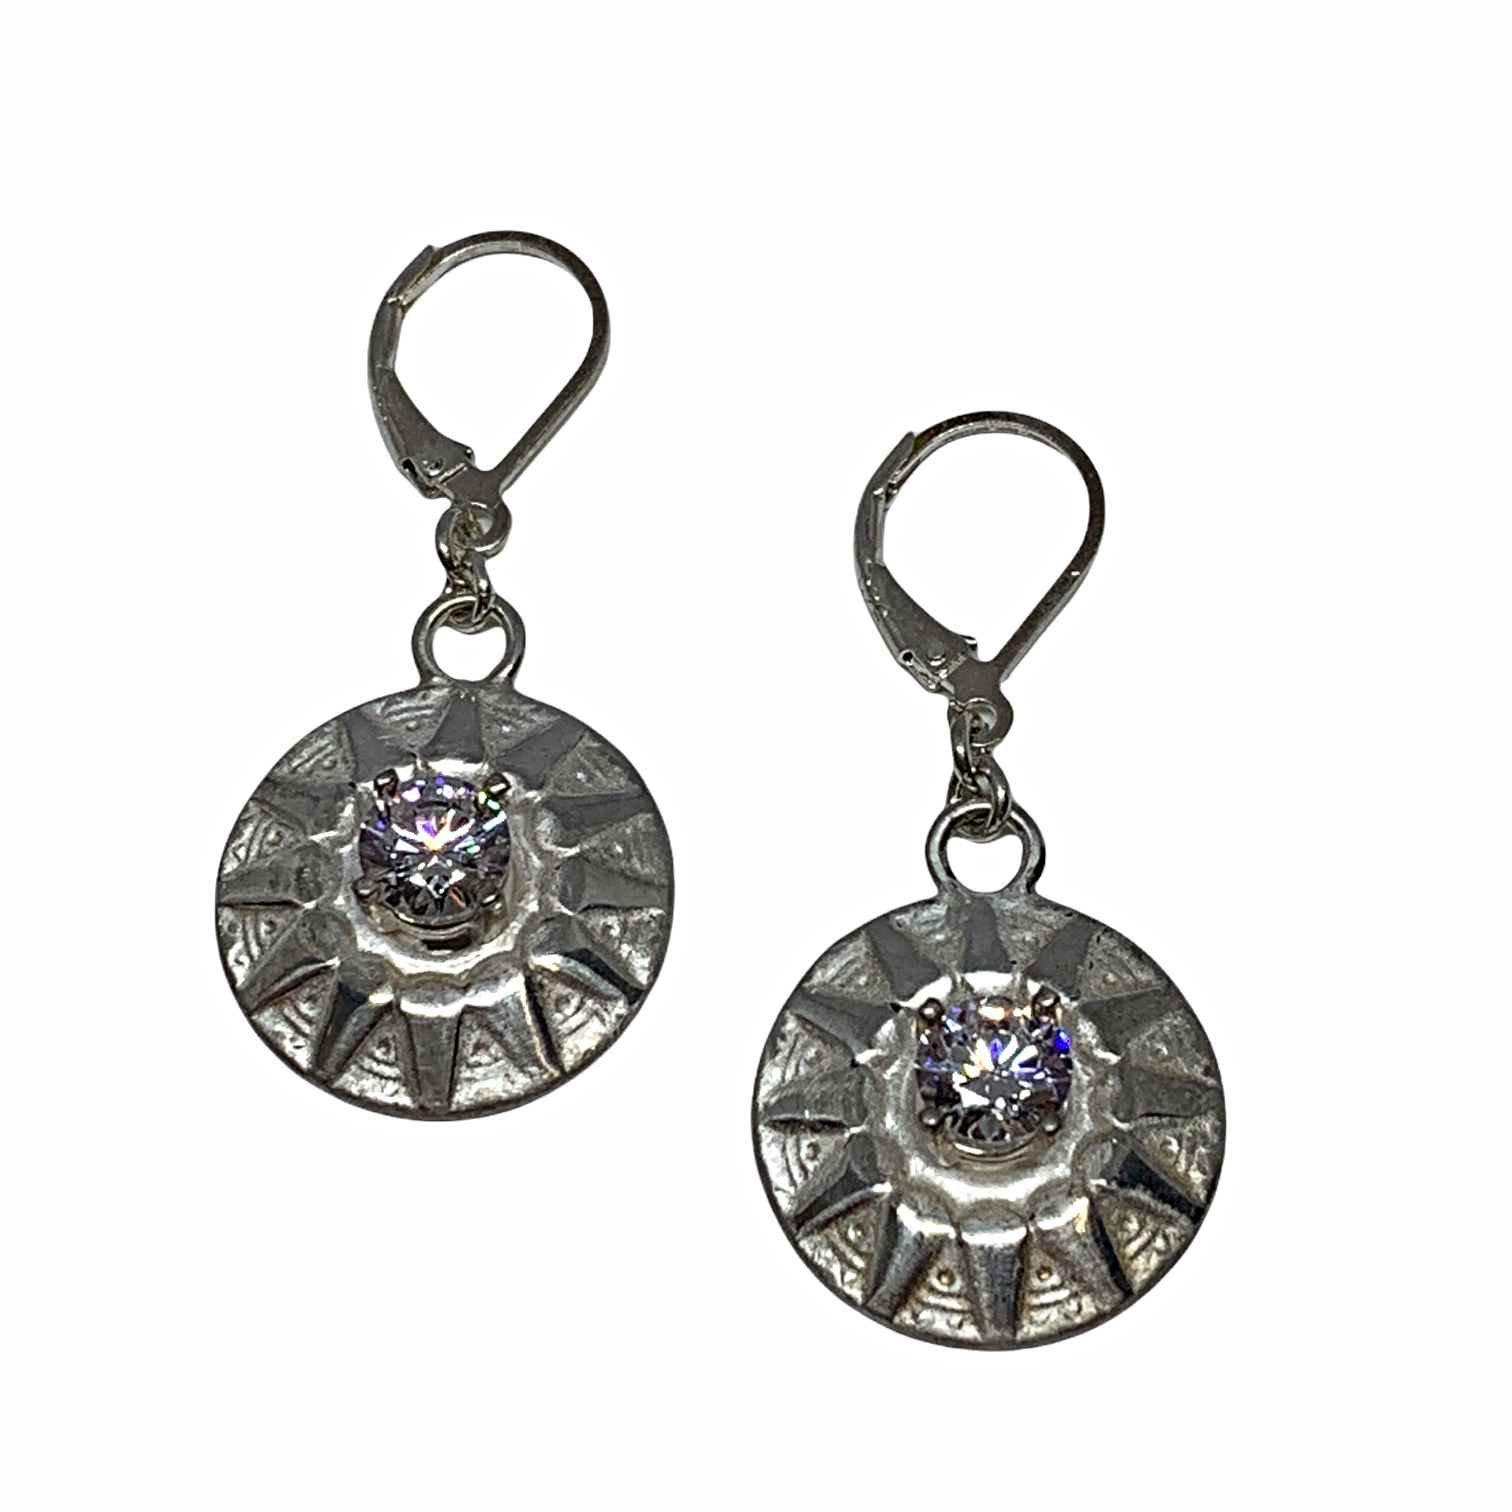 Handmade sterling and CZ earrings by Karyn Chopik | Effusion Art Gallery + Cast Glass Studio, Invermere BC